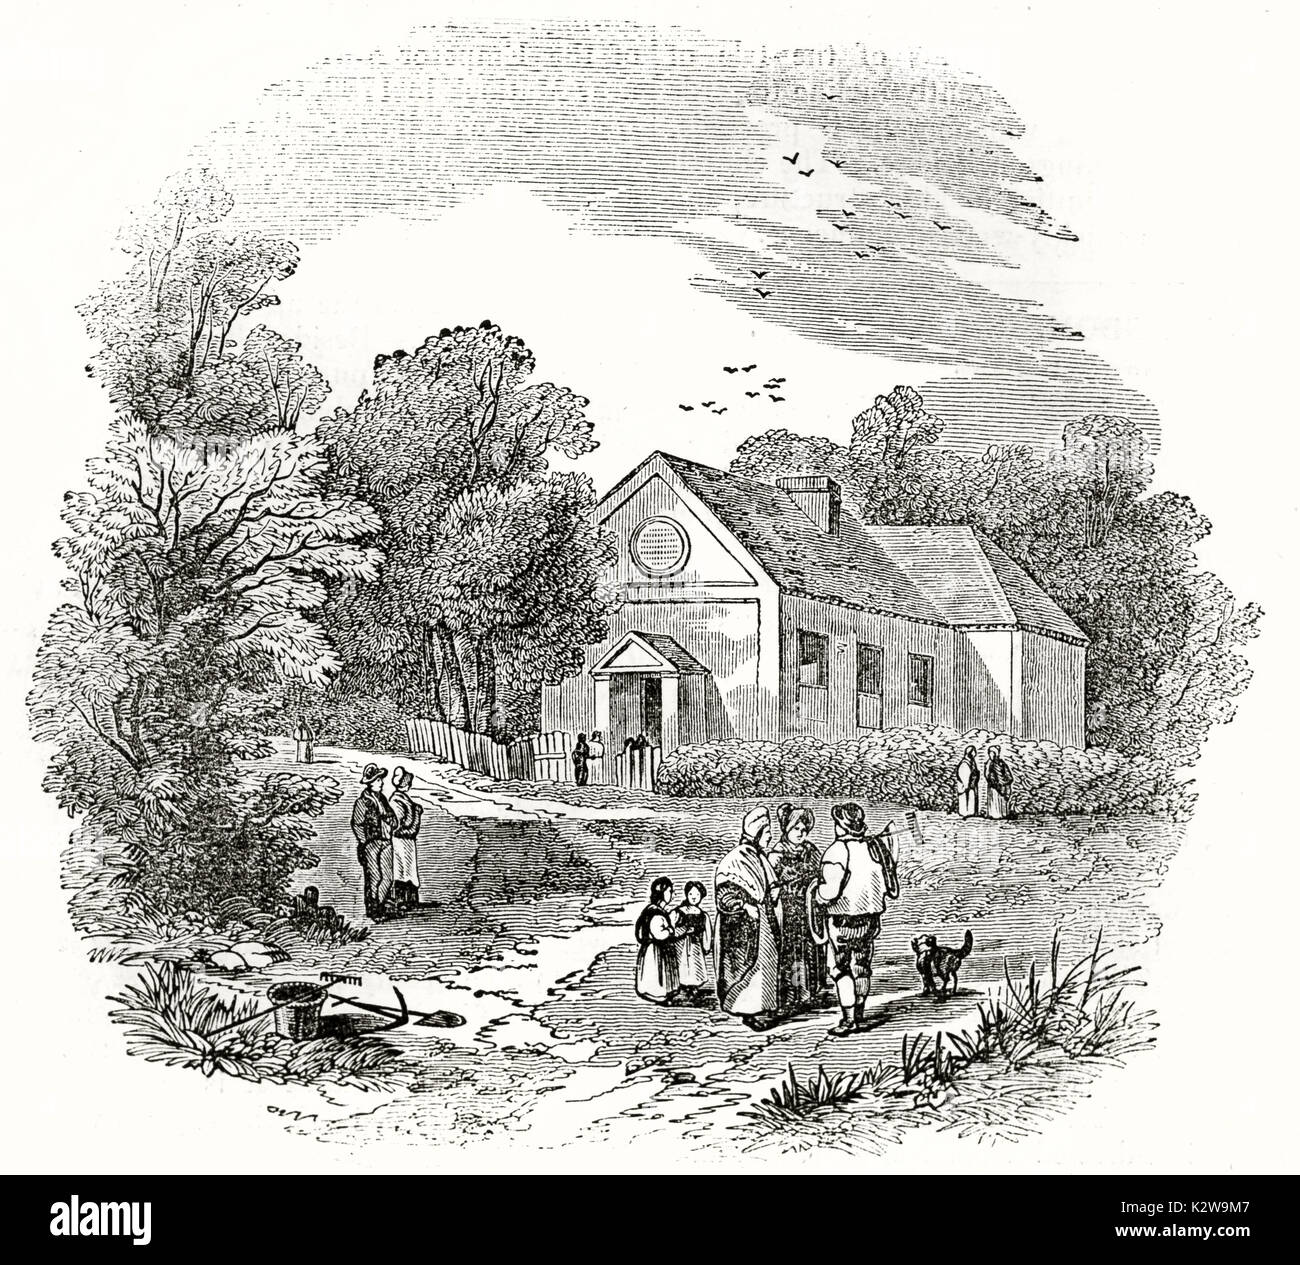 Old view of Gilpin's school at Boldre, Hampshire, England. By unidentified author, published on Penny Magazine, London, 1835 - Stock Image